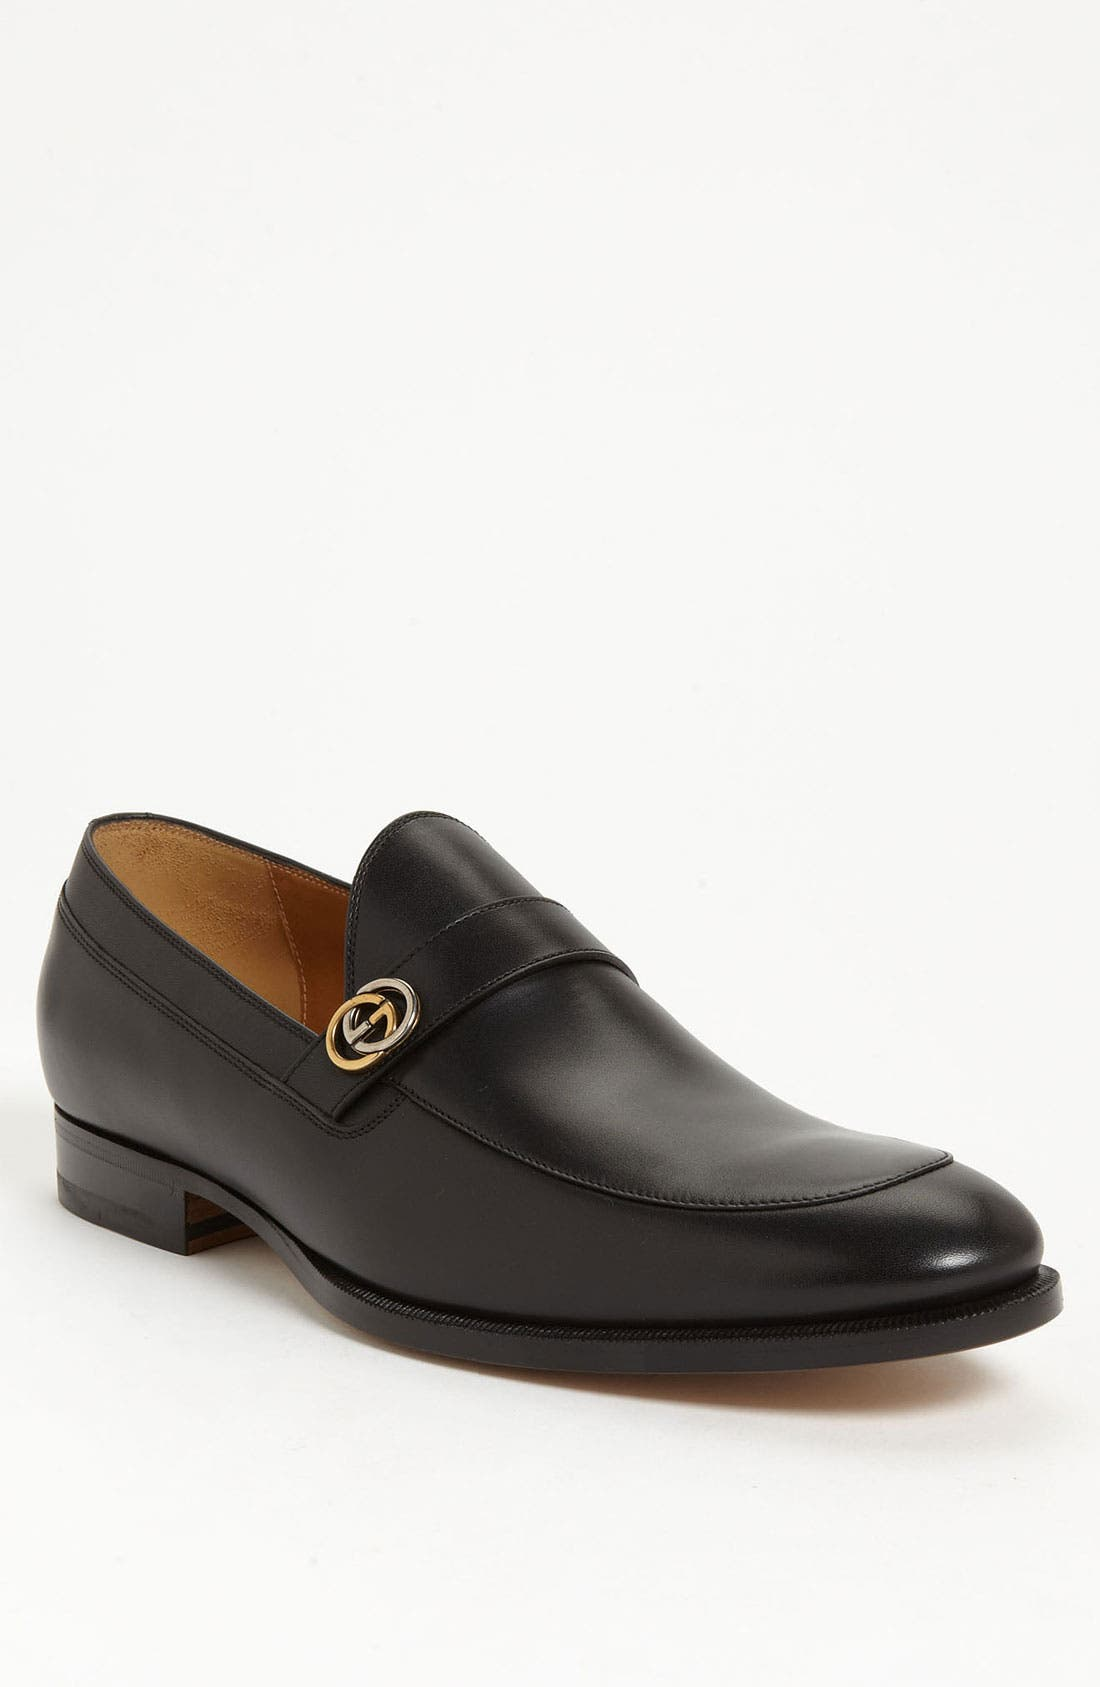 Main Image - Gucci 'Bouts' Loafer